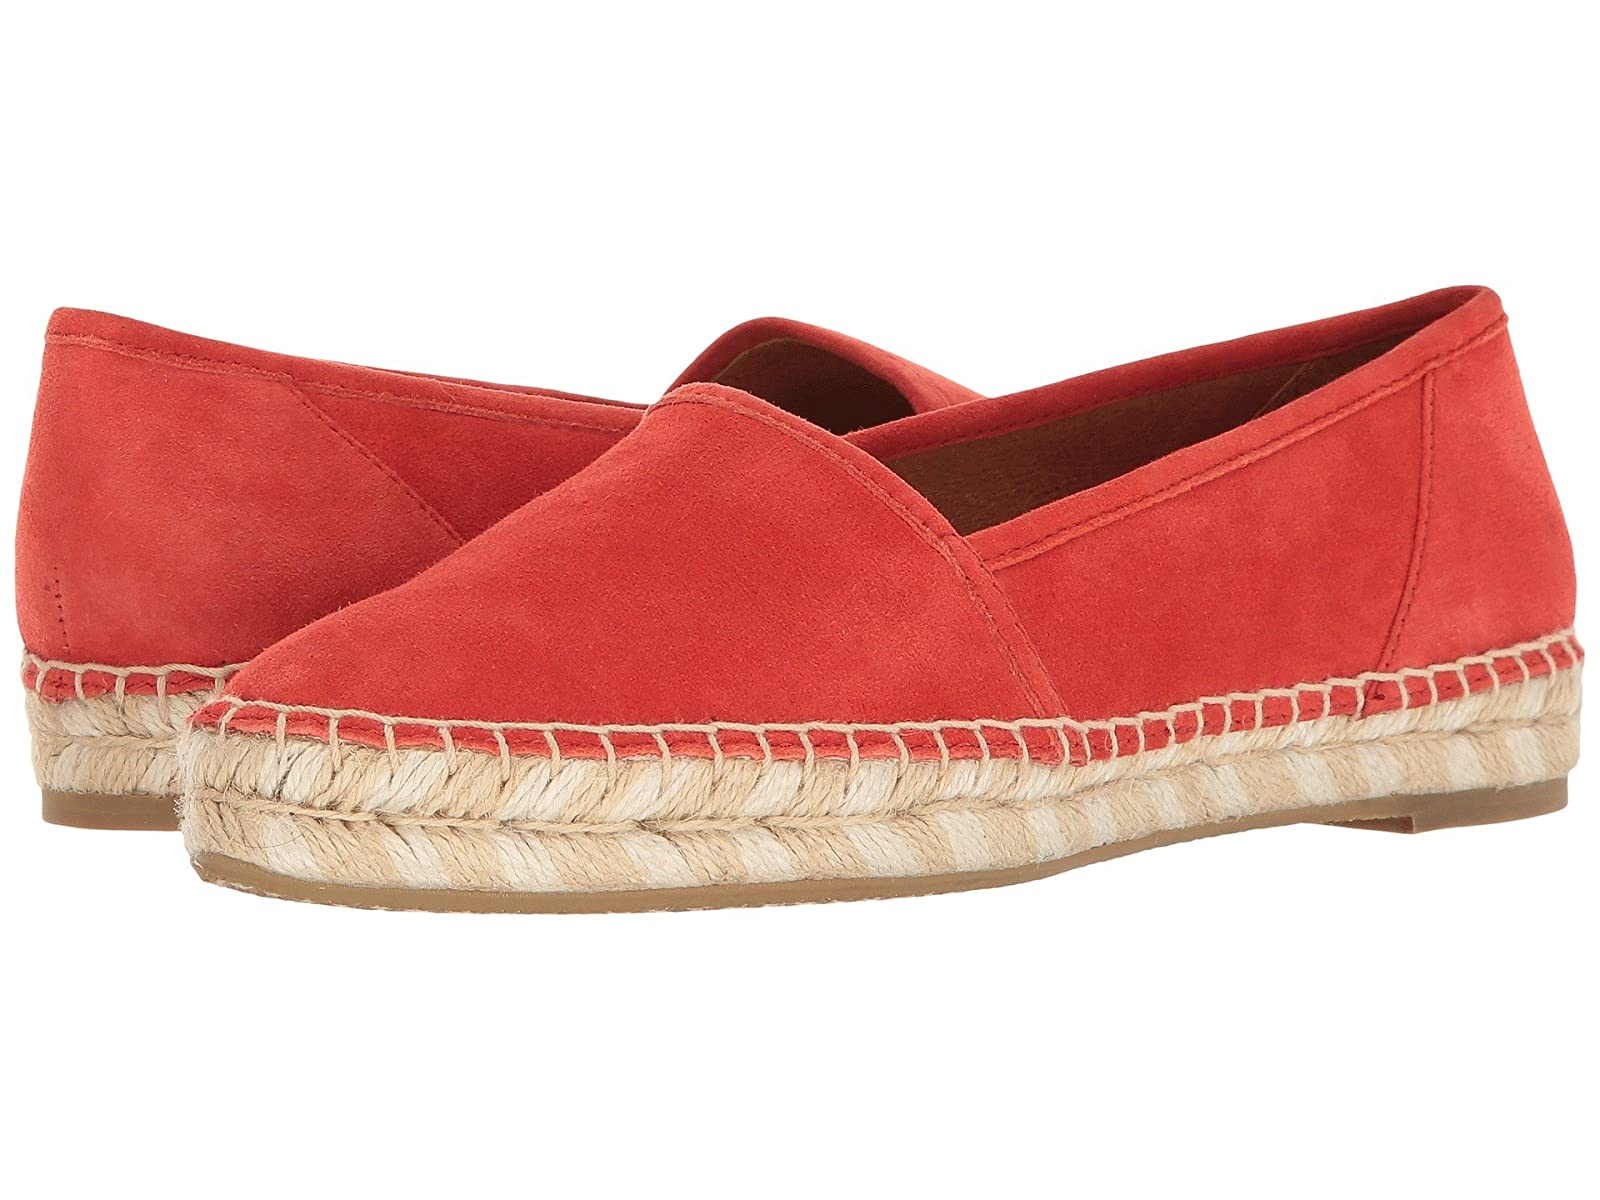 Frye Lee A LineCheap and distinctive eye-catching shoes